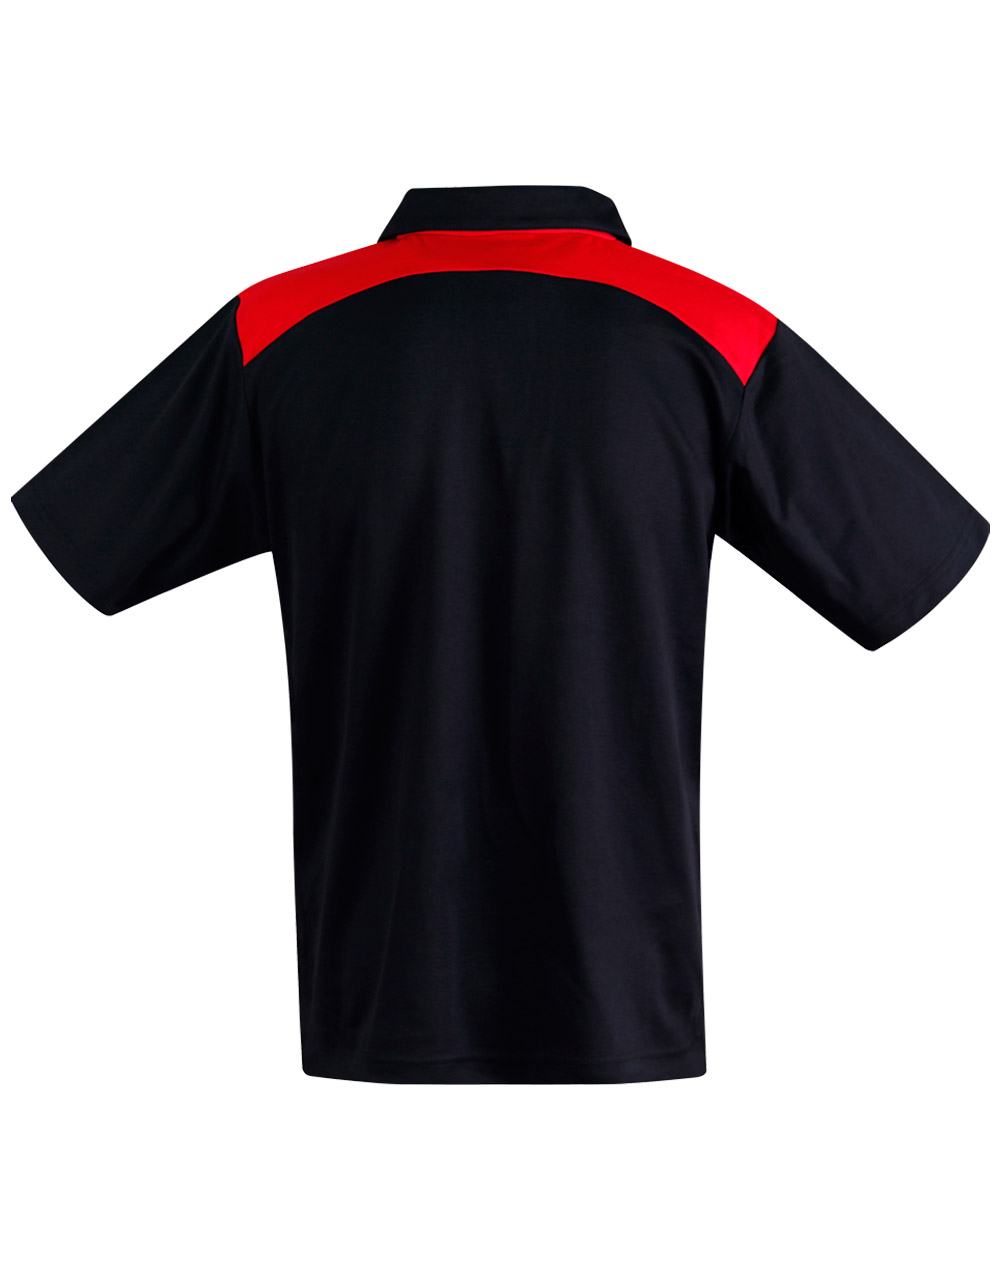 https://s3-ap-southeast-1.amazonaws.com/ws-imgs/POLOSHIRTS/PS31_BlackRed_Back.jpg